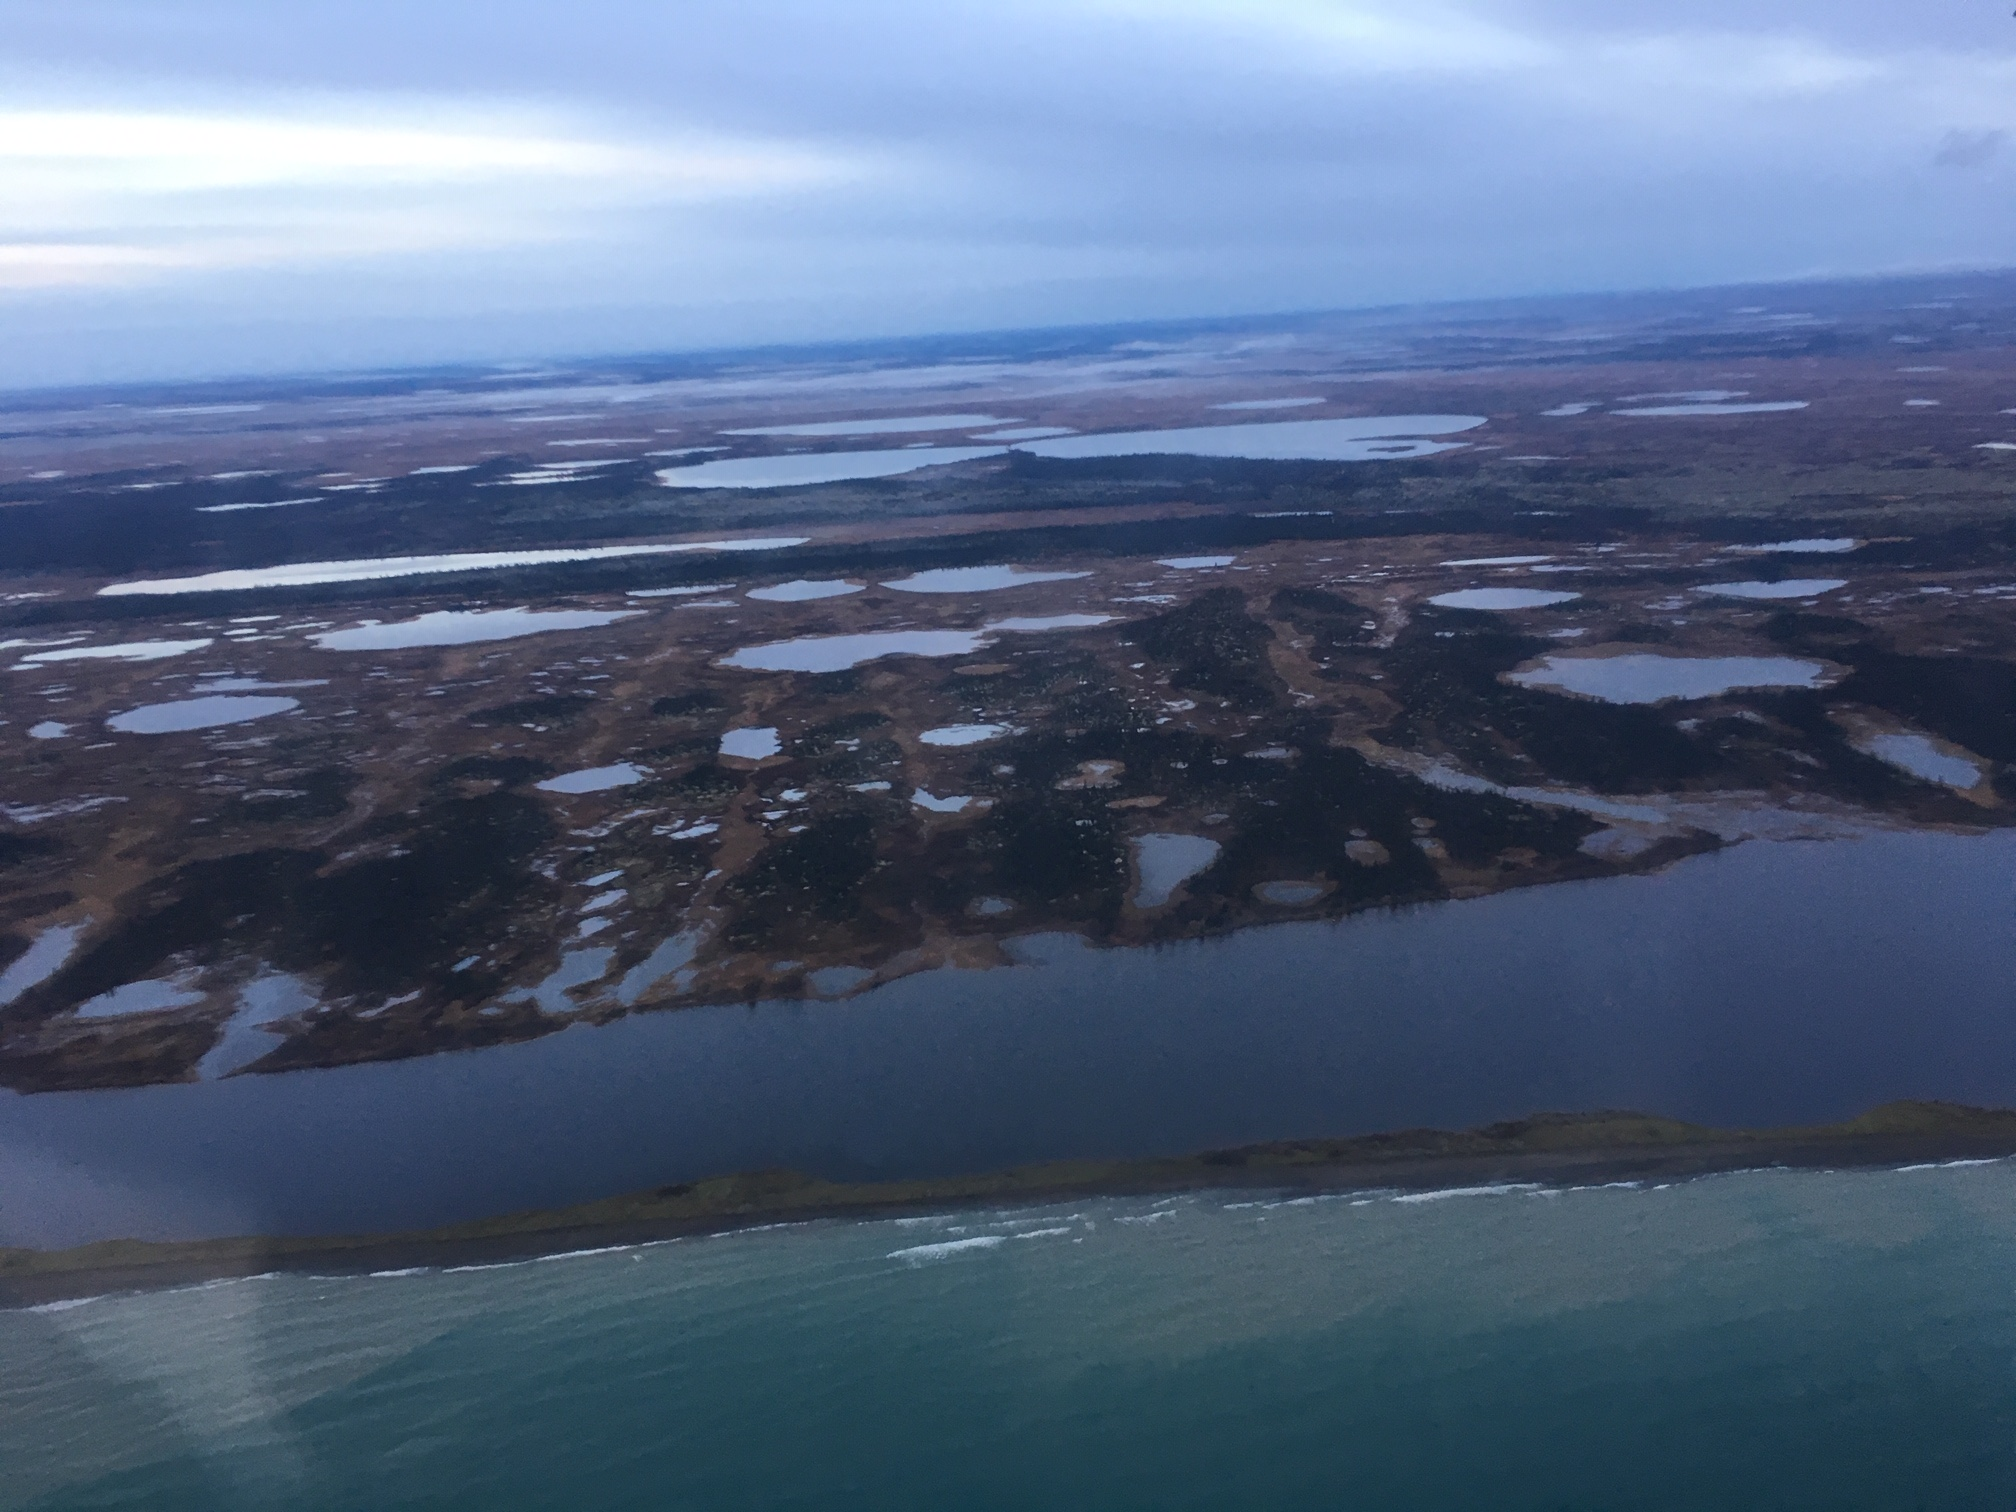 Ground and surface water mingle in Bristol Bay